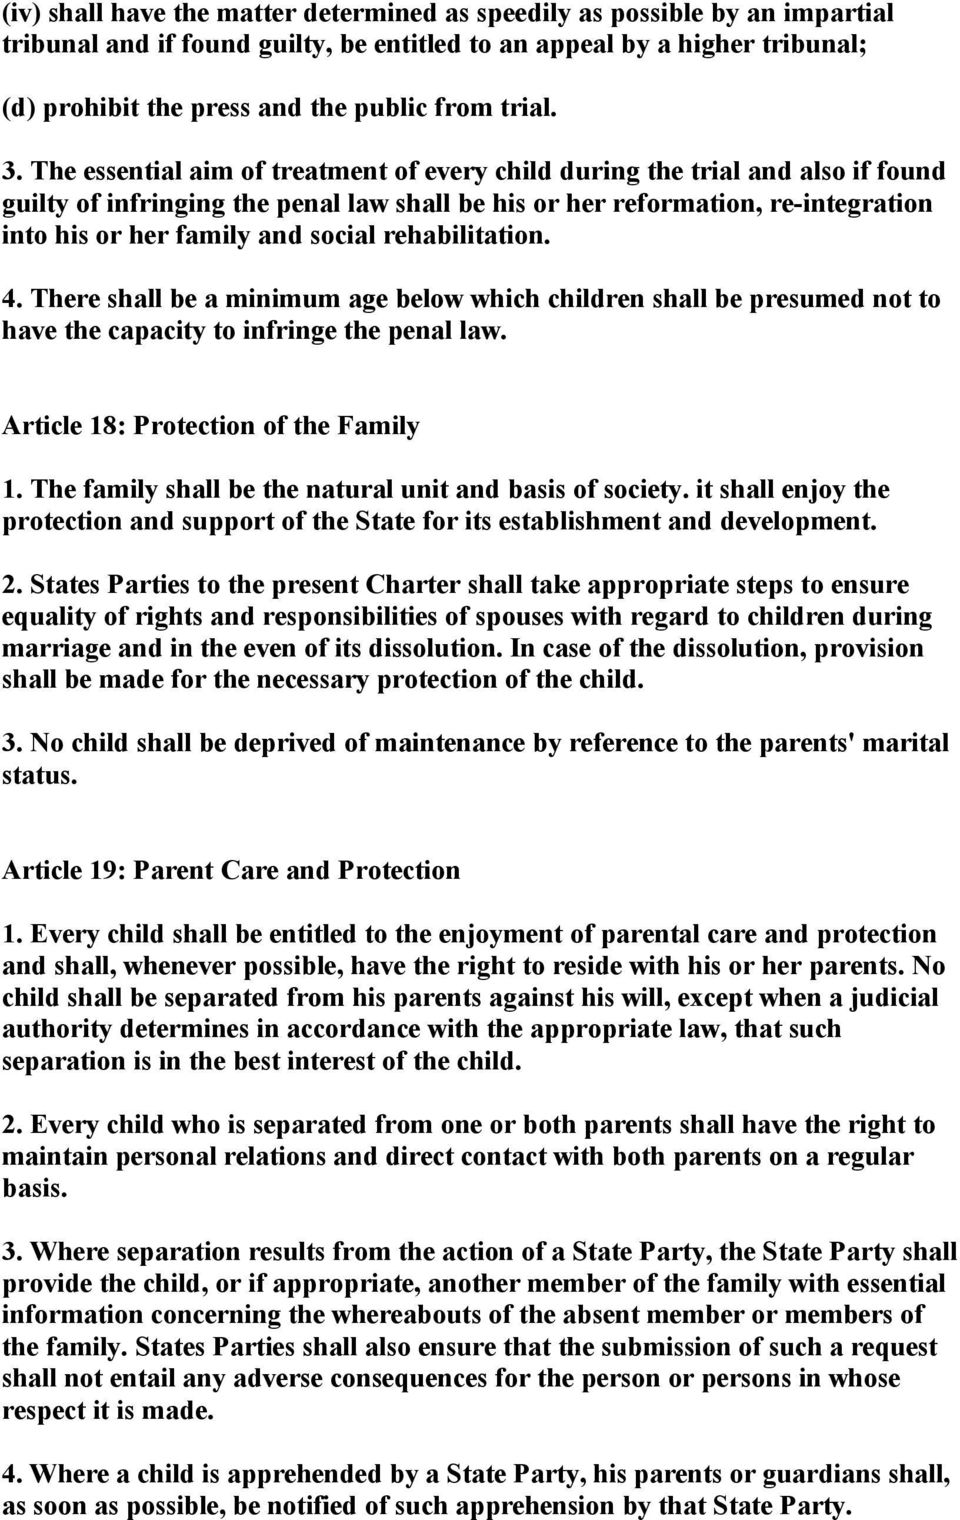 The essential aim of treatment of every child during the trial and also if found guilty of infringing the penal law shall be his or her reformation, re-integration into his or her family and social